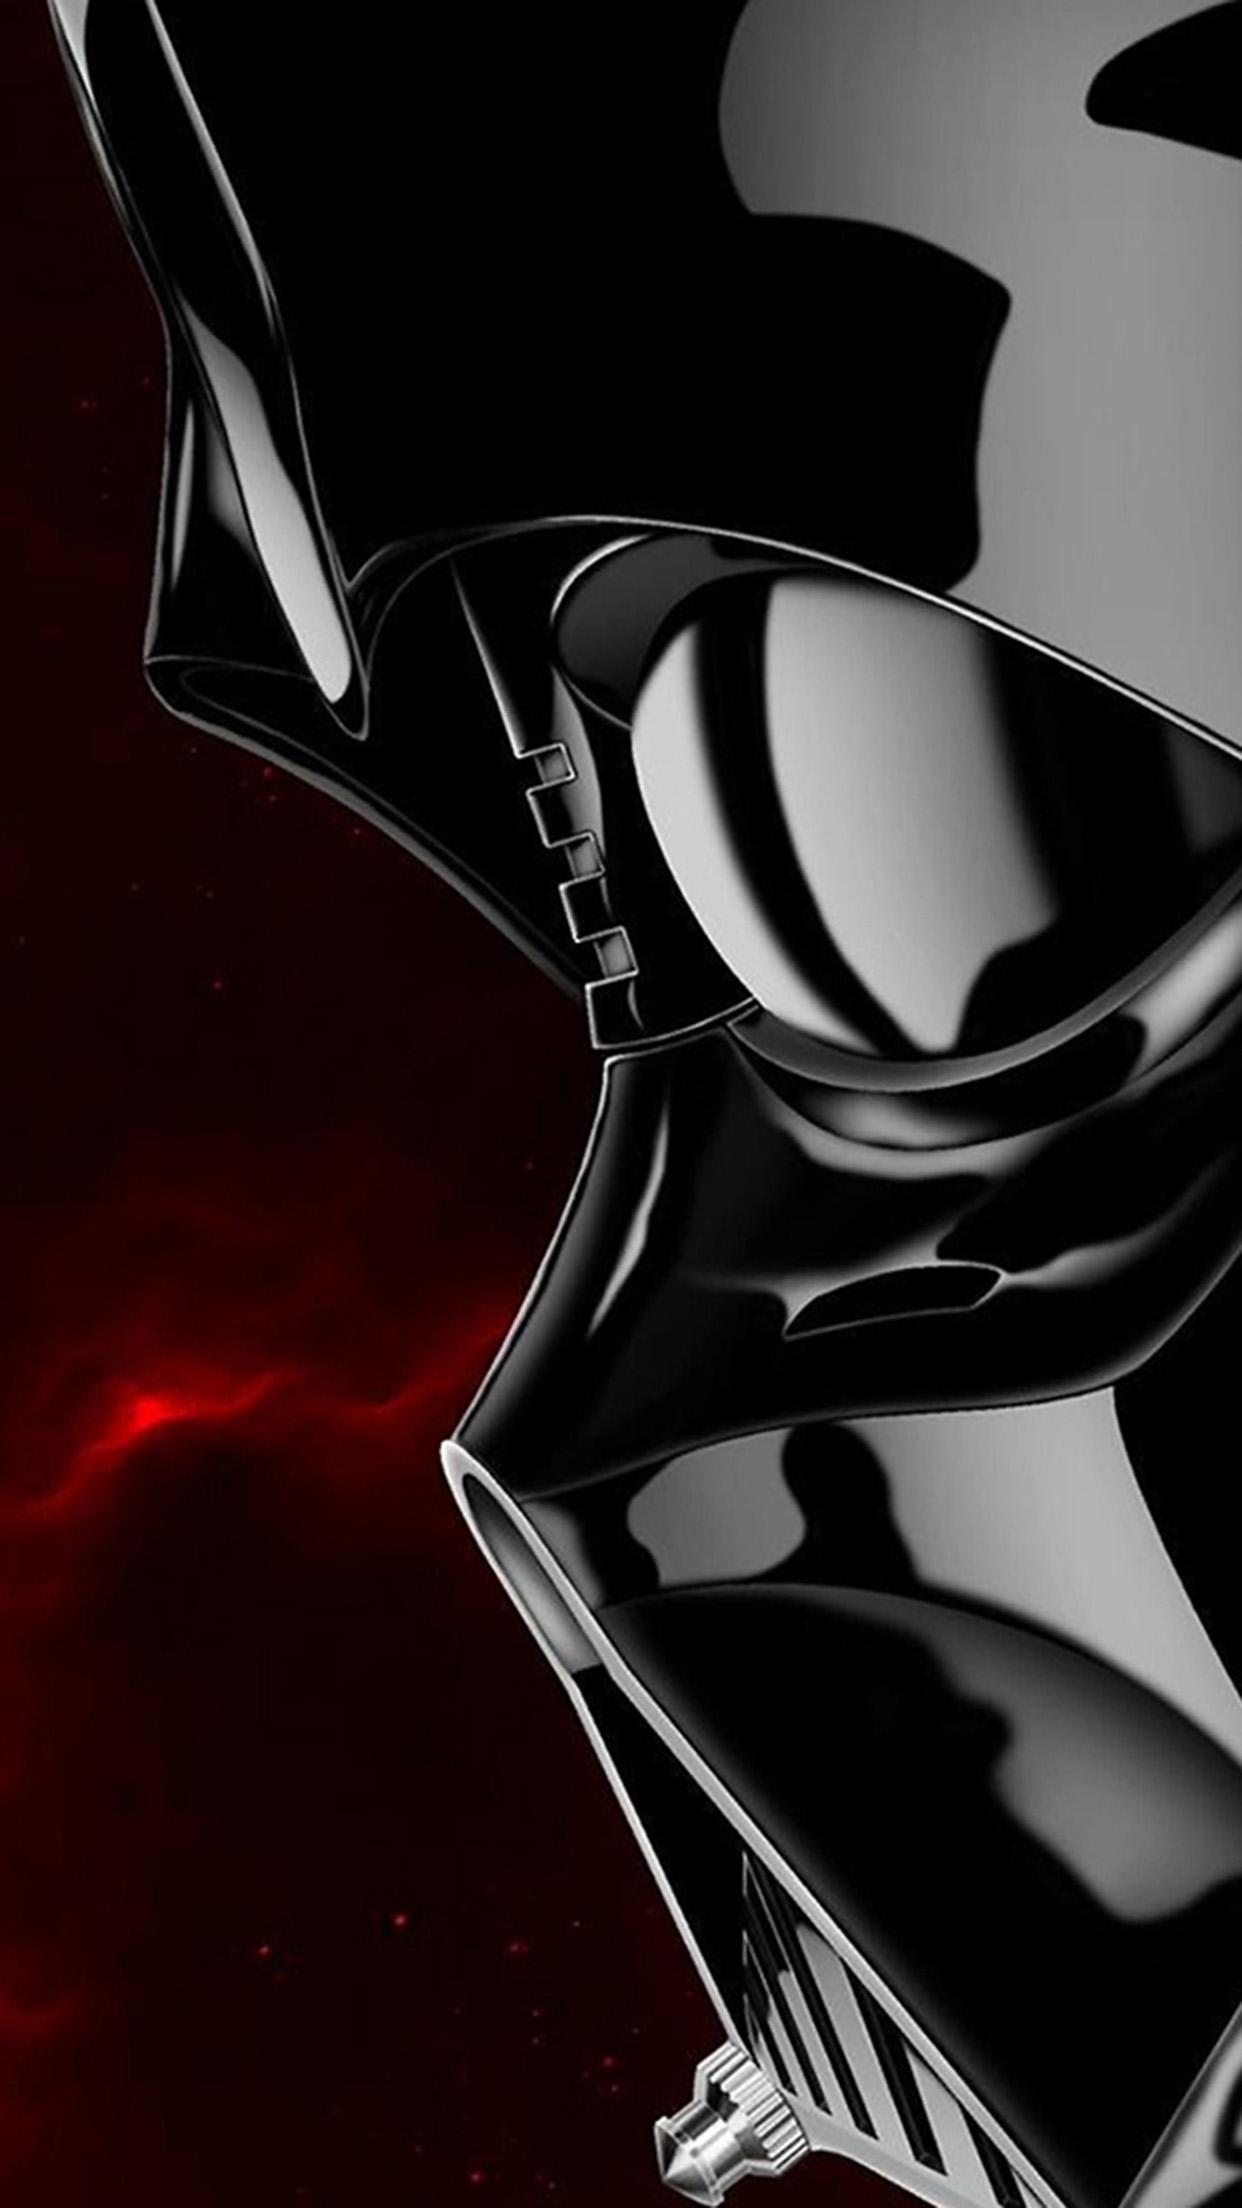 Star Wars Darth Vader Wallpaper For Iphone X 8 7 6